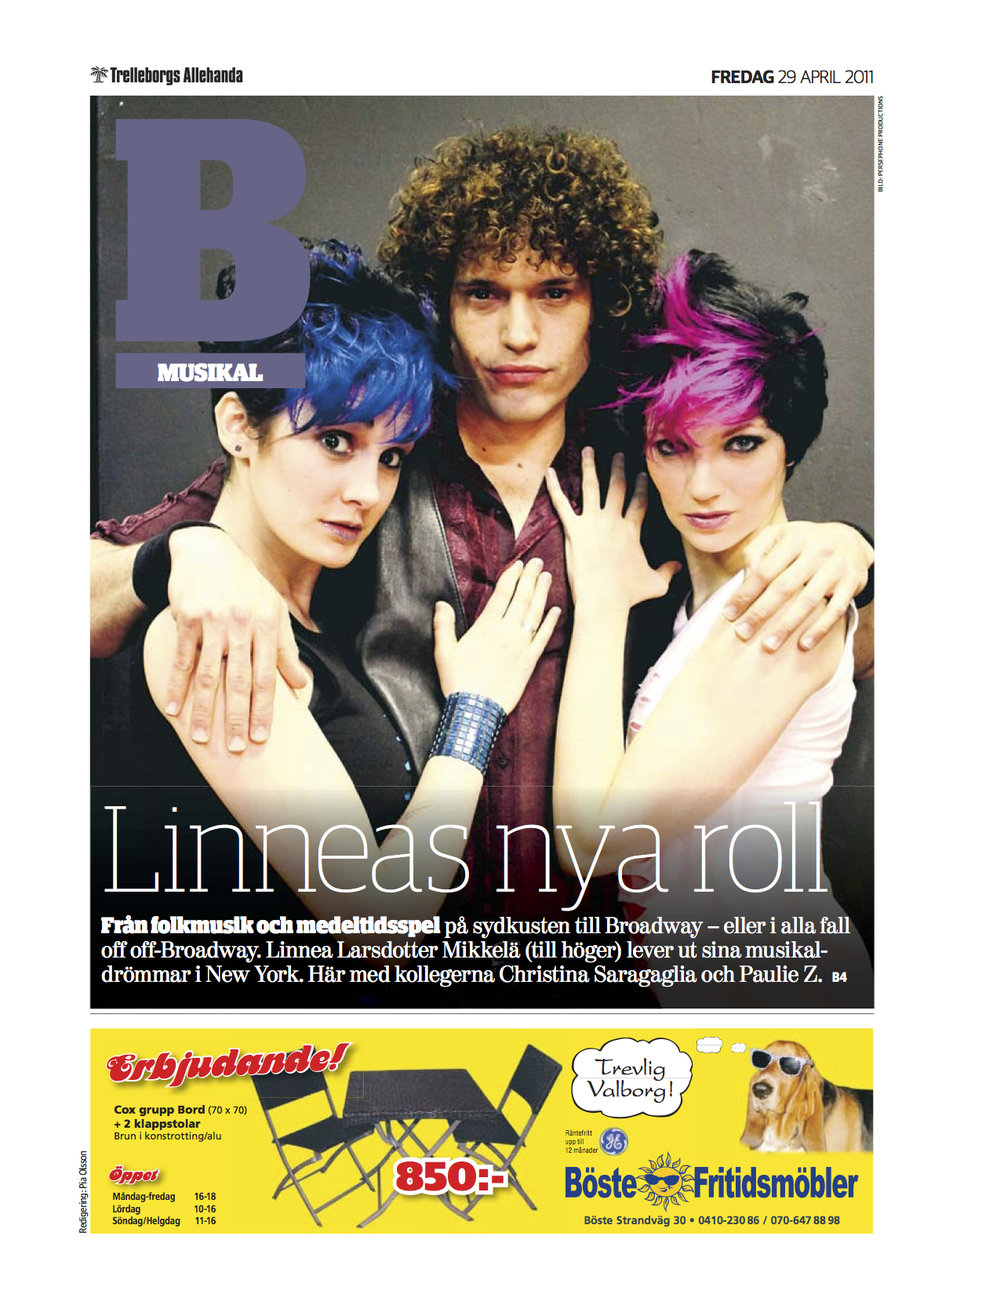 Europa cover and article.jpg